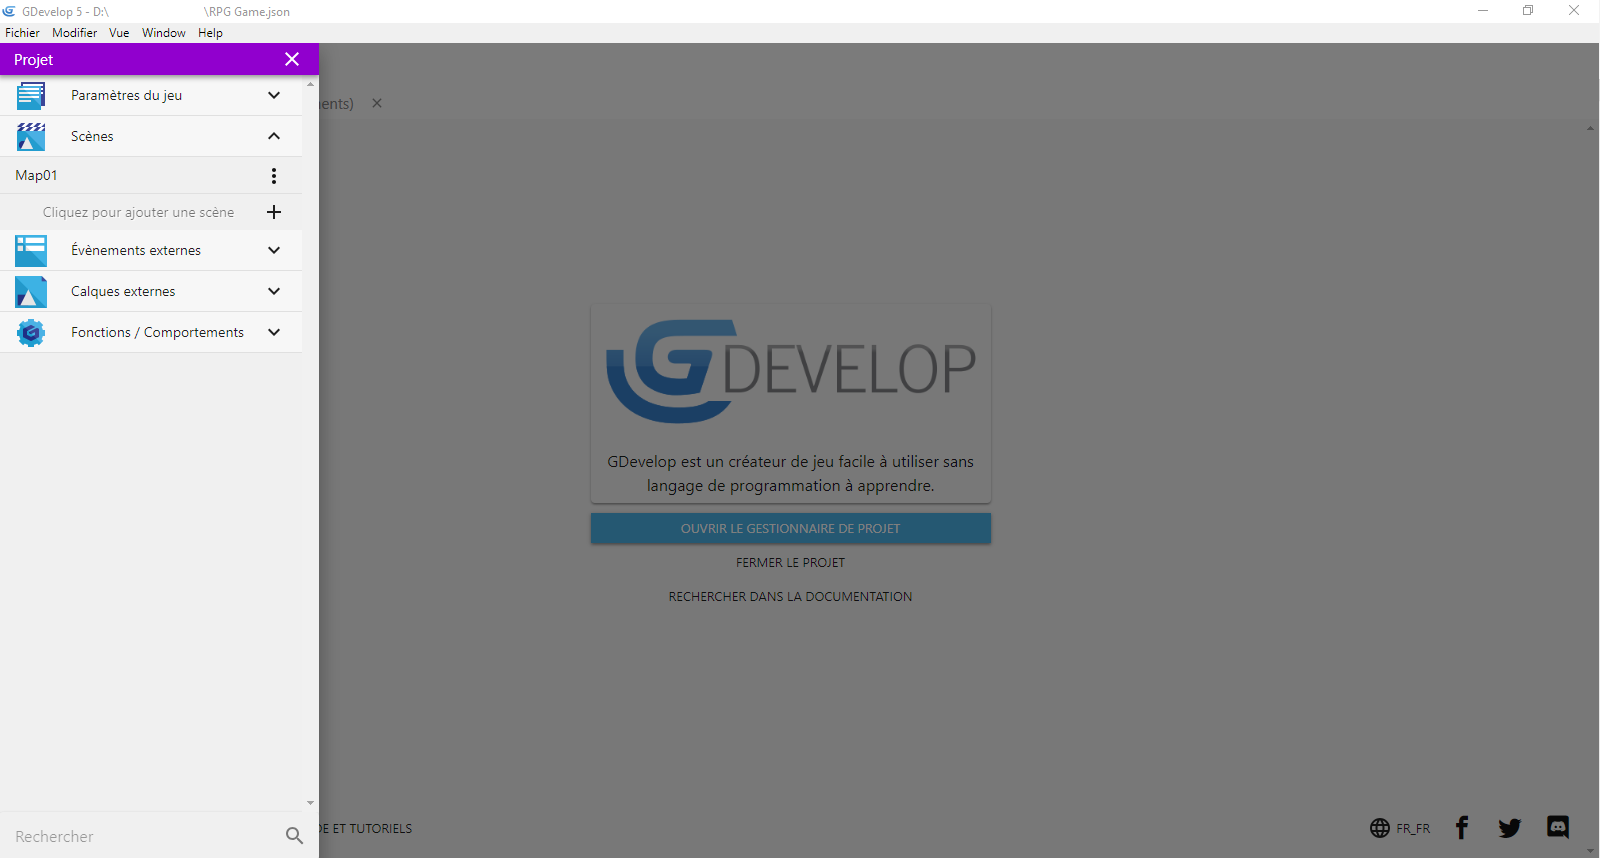 https://makeyourgame.fun//upload/users/Lyxyz/nouveaudossier/ouvertureprojetgdevelop-5e9ca8157eae8.png